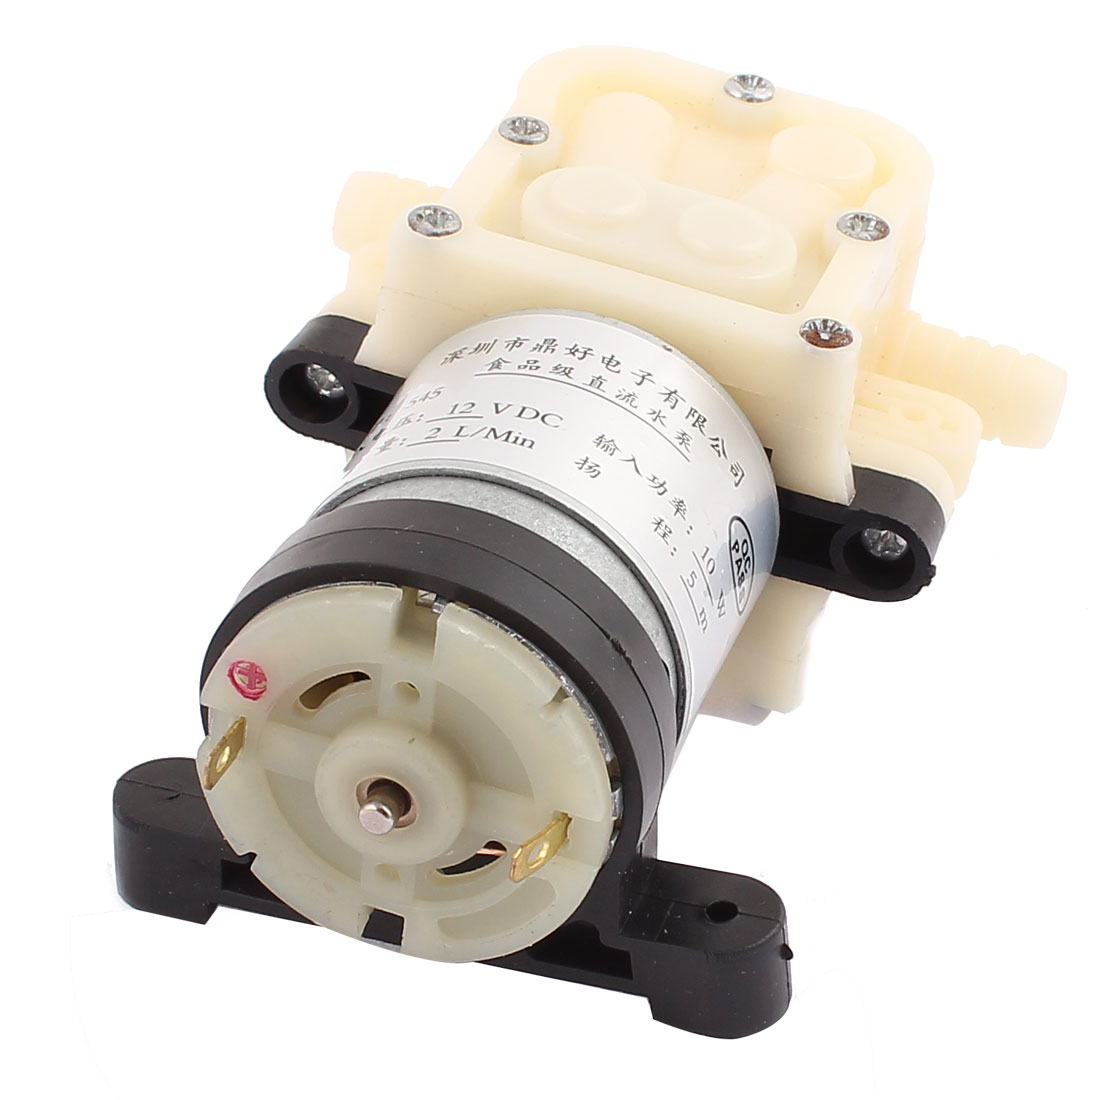 DC 12V Diaphragm Pump Mini Water/Oil Pump 545 Motor 2L/min